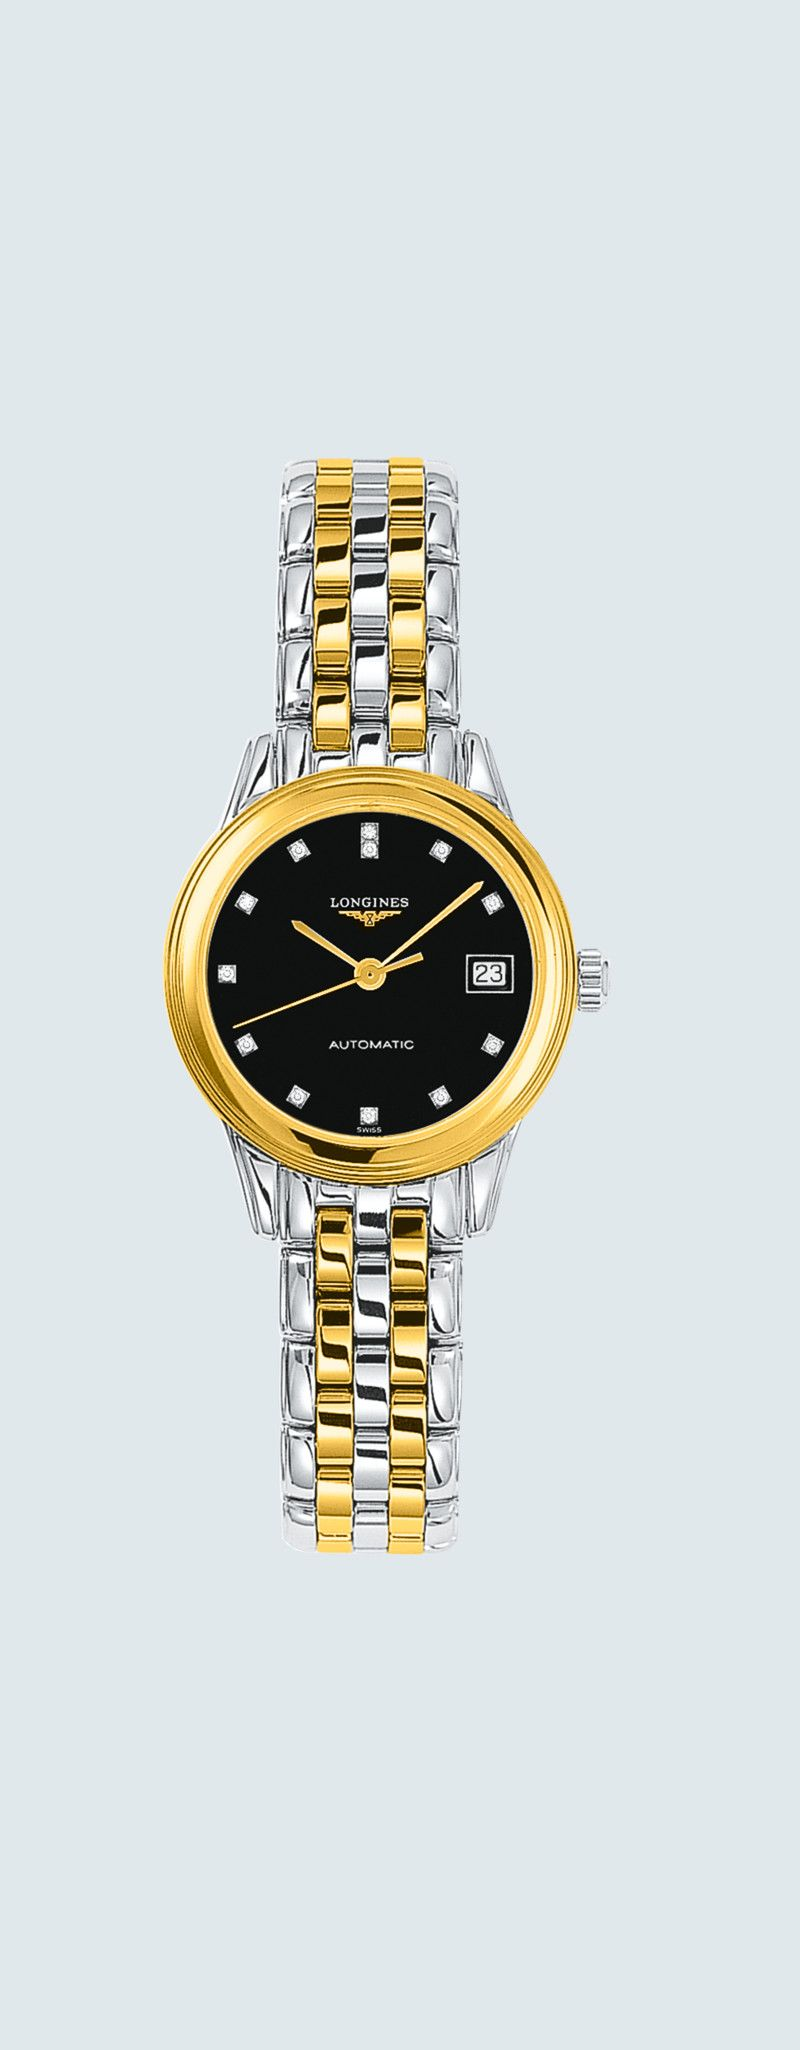 26.00 mm Stainless steel and yellow PVD coating case with Black lacquered polished dial and Stainle